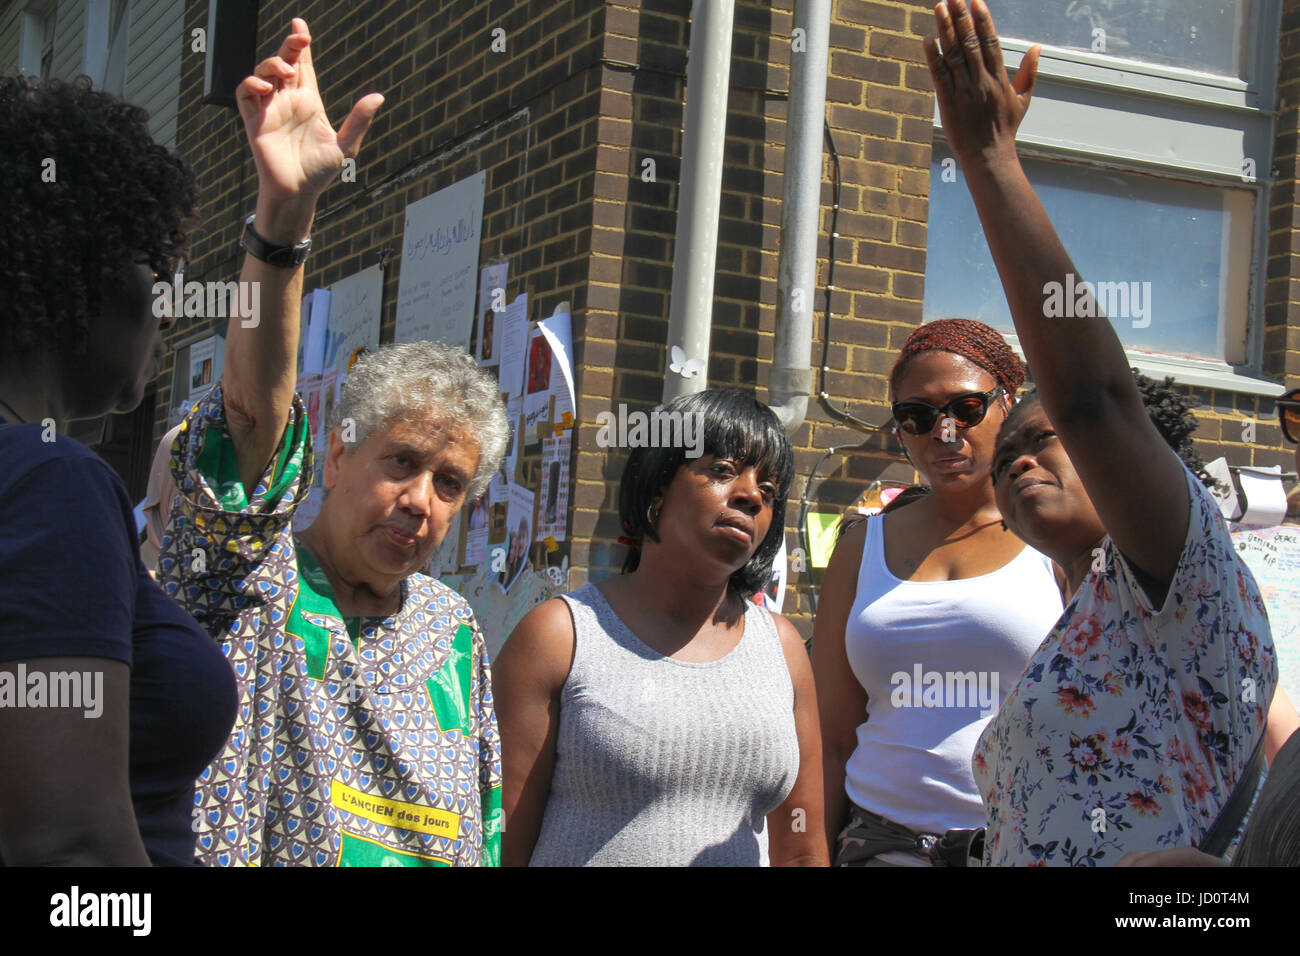 London, UK. 17th June 2017 - A group of women join hand in song by a Grenfell Memorial wall. At least 30 people - Stock Image